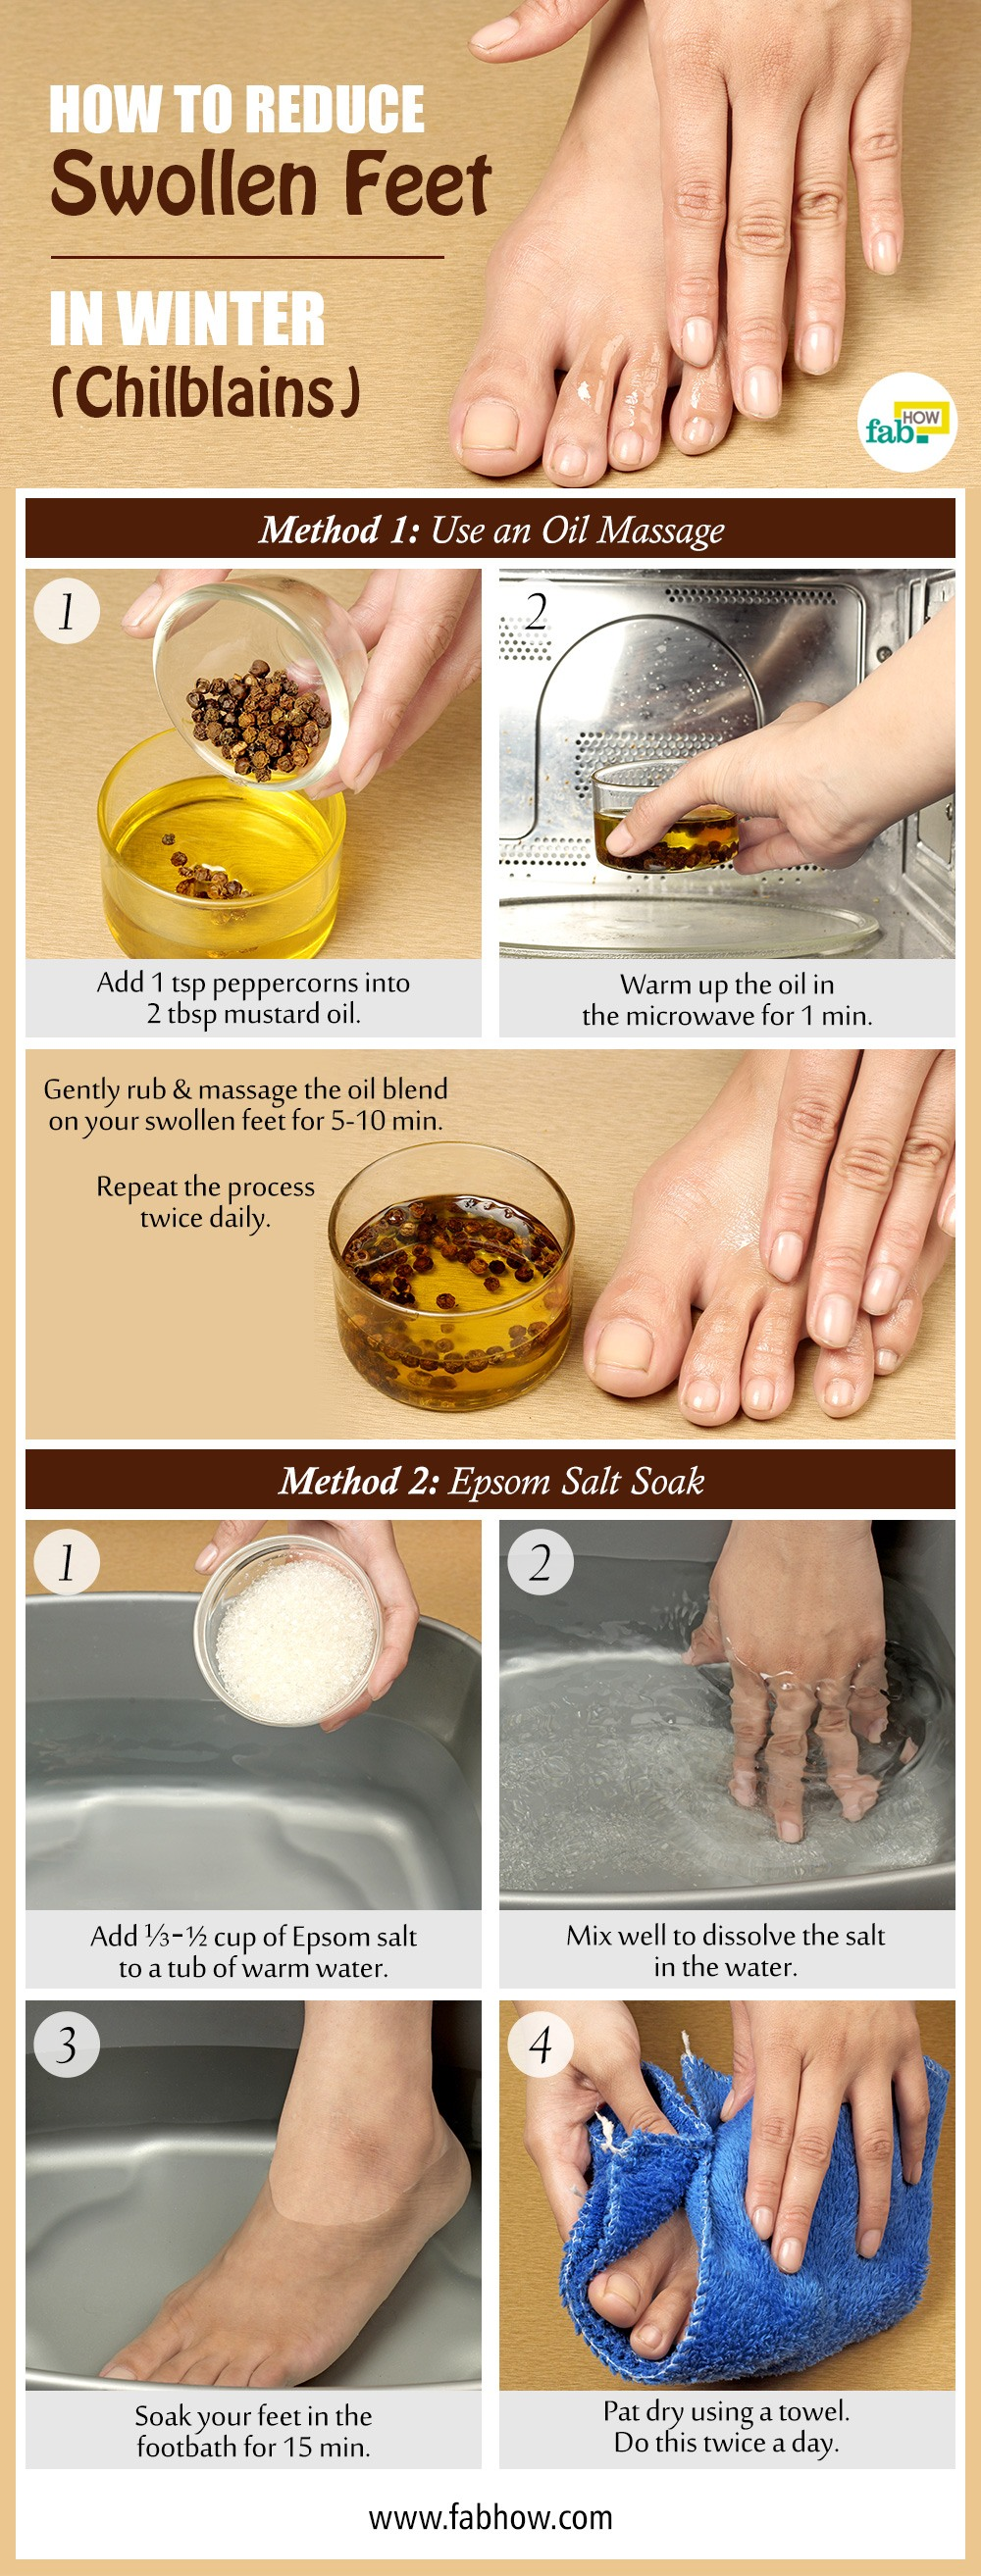 Skin Care In Winter With Home Remedies